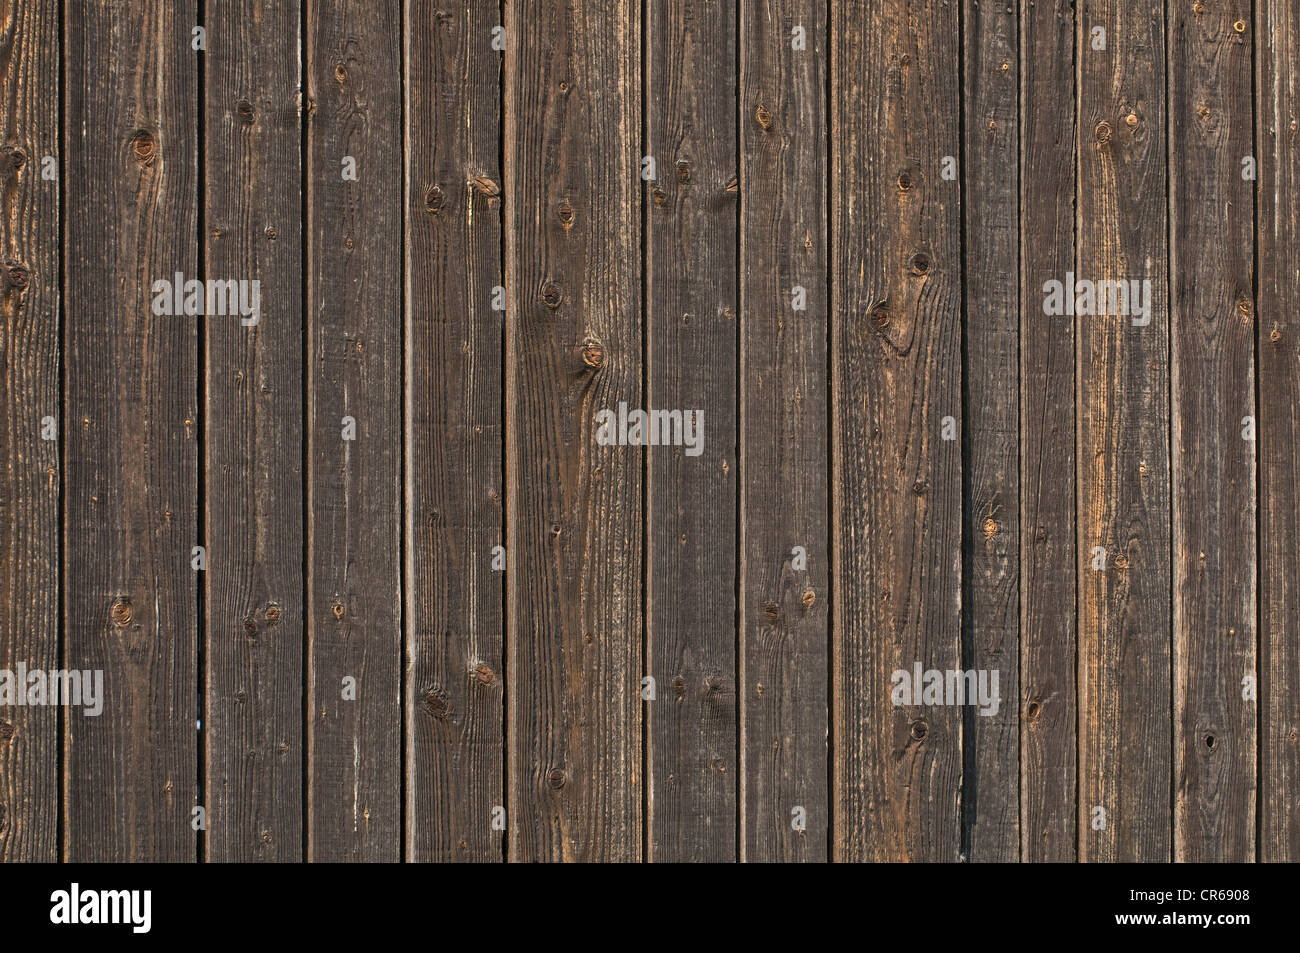 Wall with weathered wooden planks, background Stock Photo